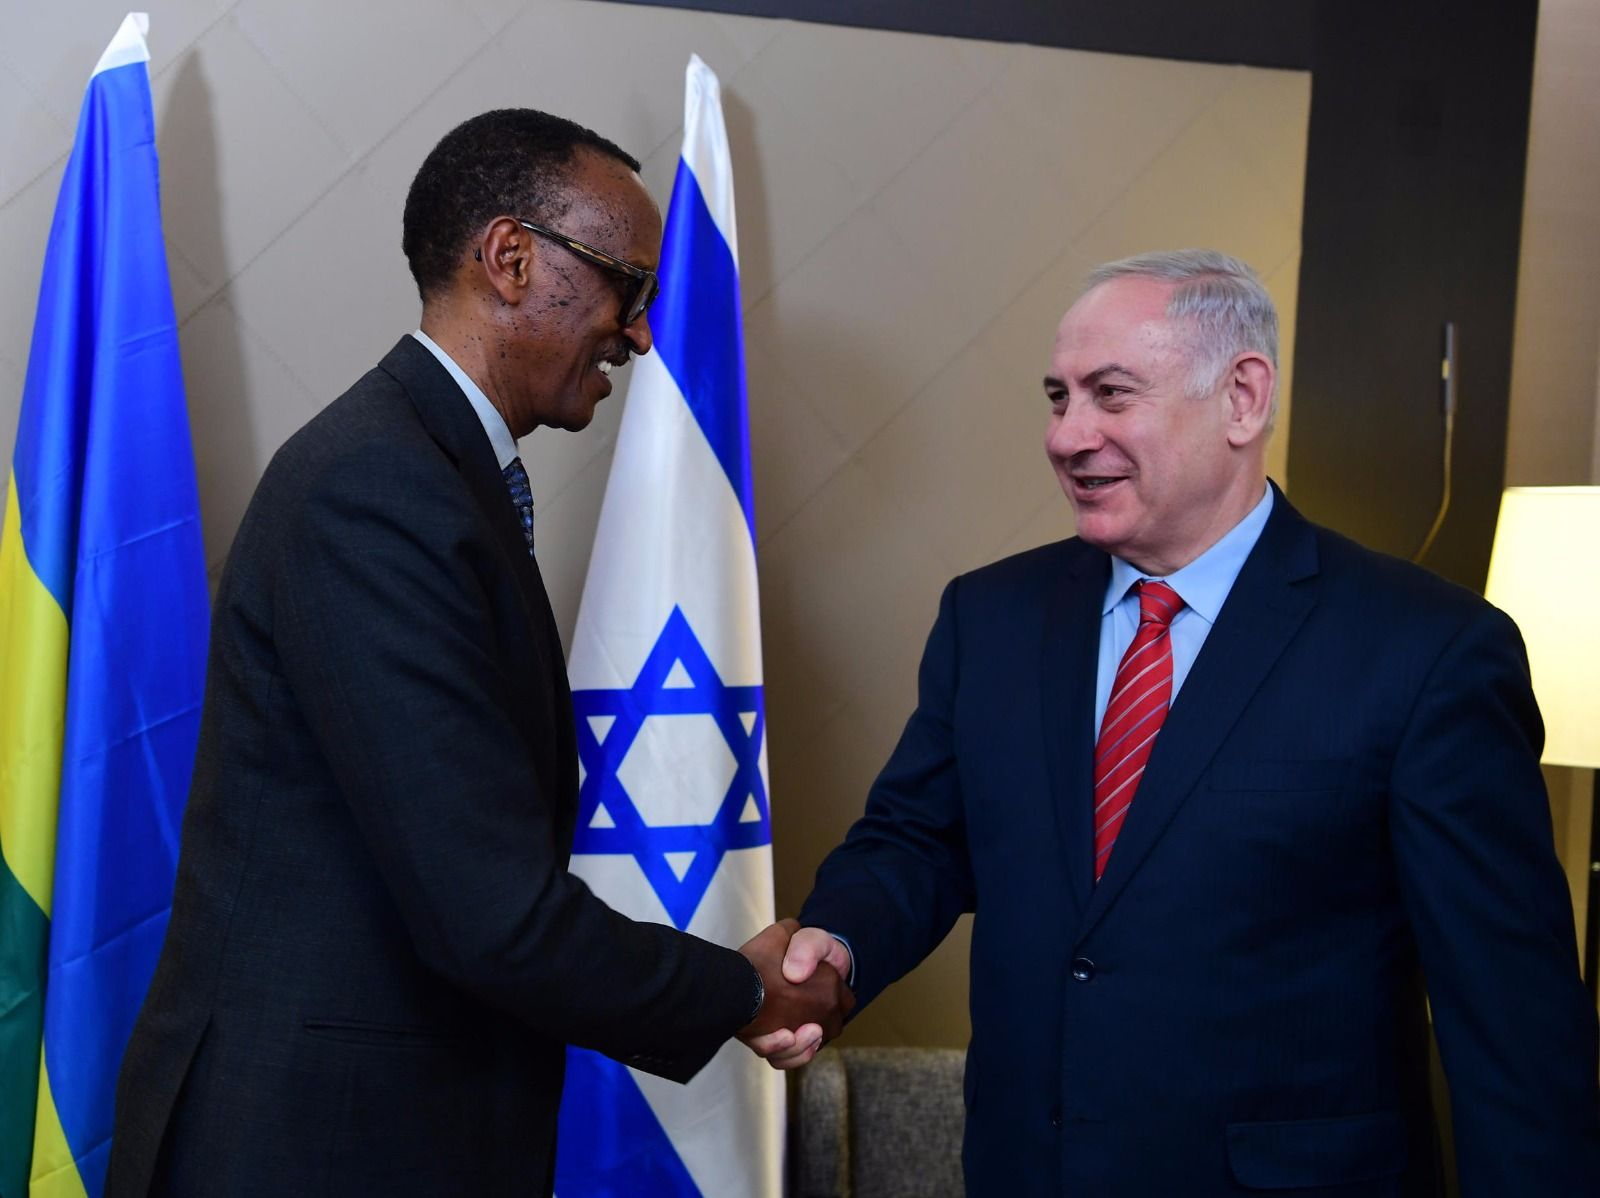 Israel opens first embassy in Rwanda as PM pushes Africa ties